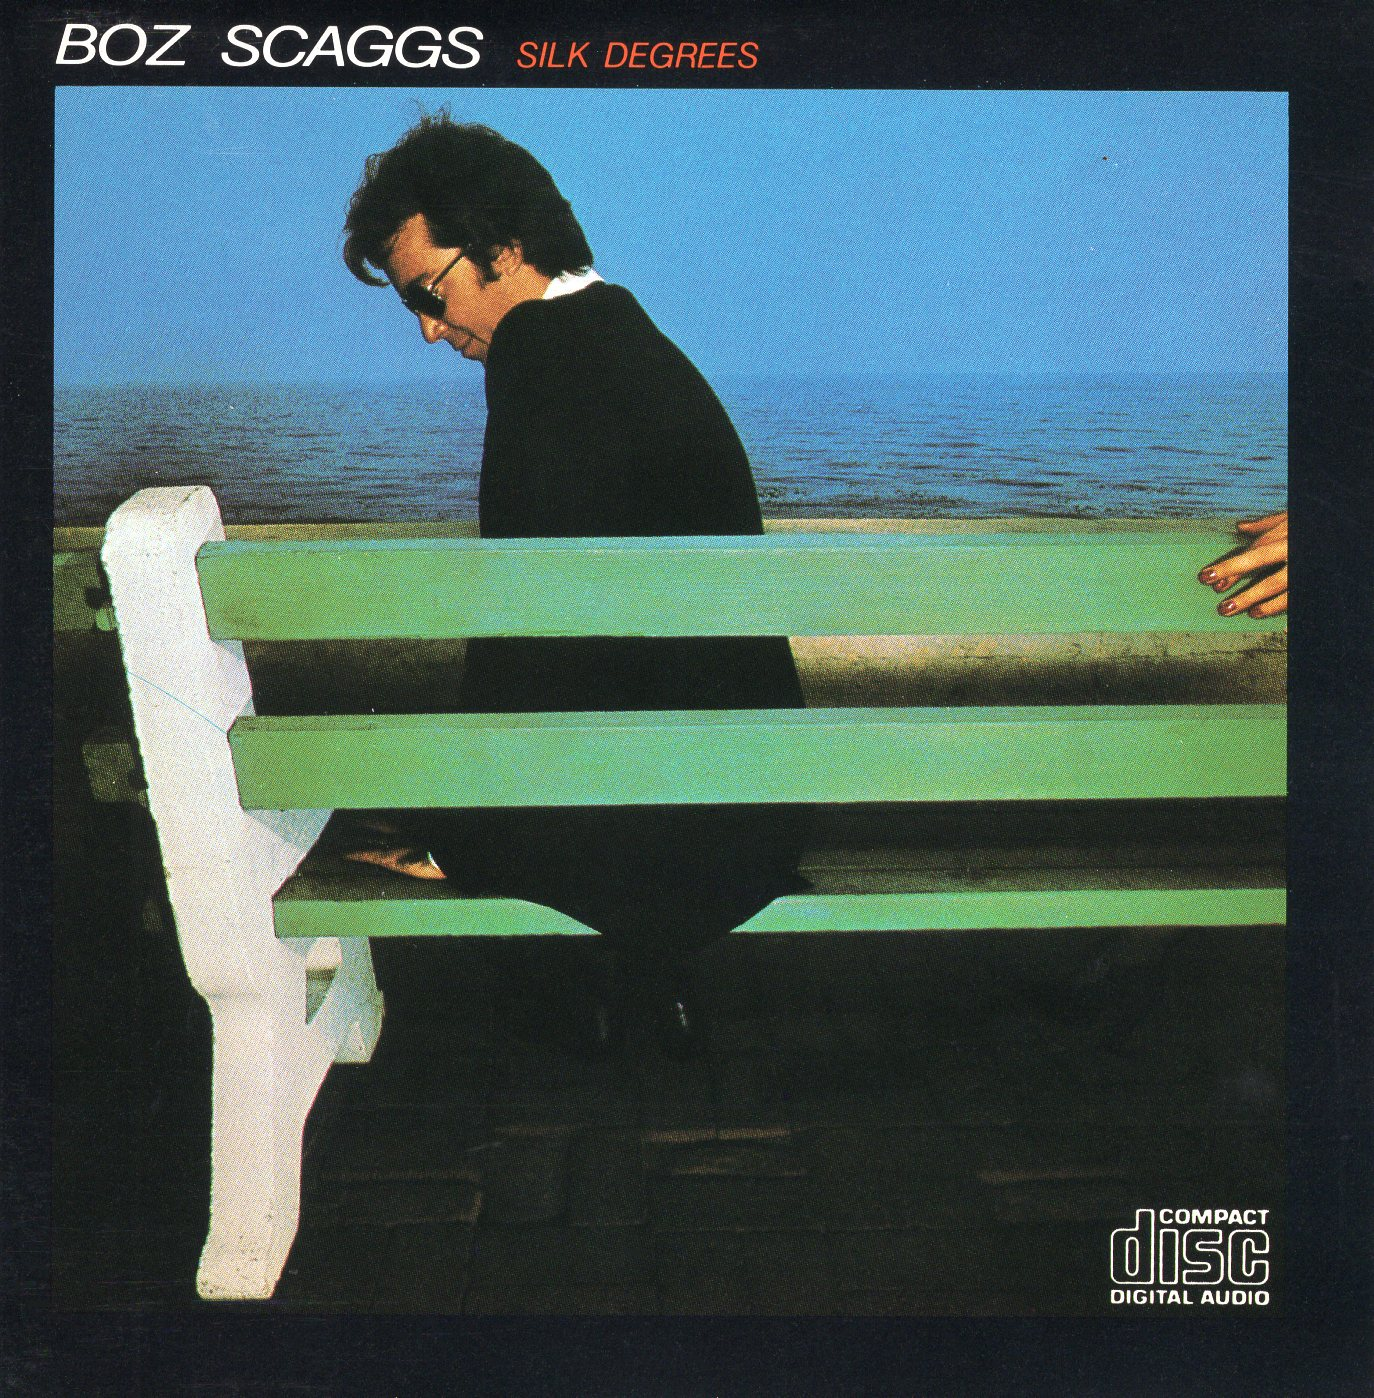 """Slik Degrees"" Boz Scaggs"